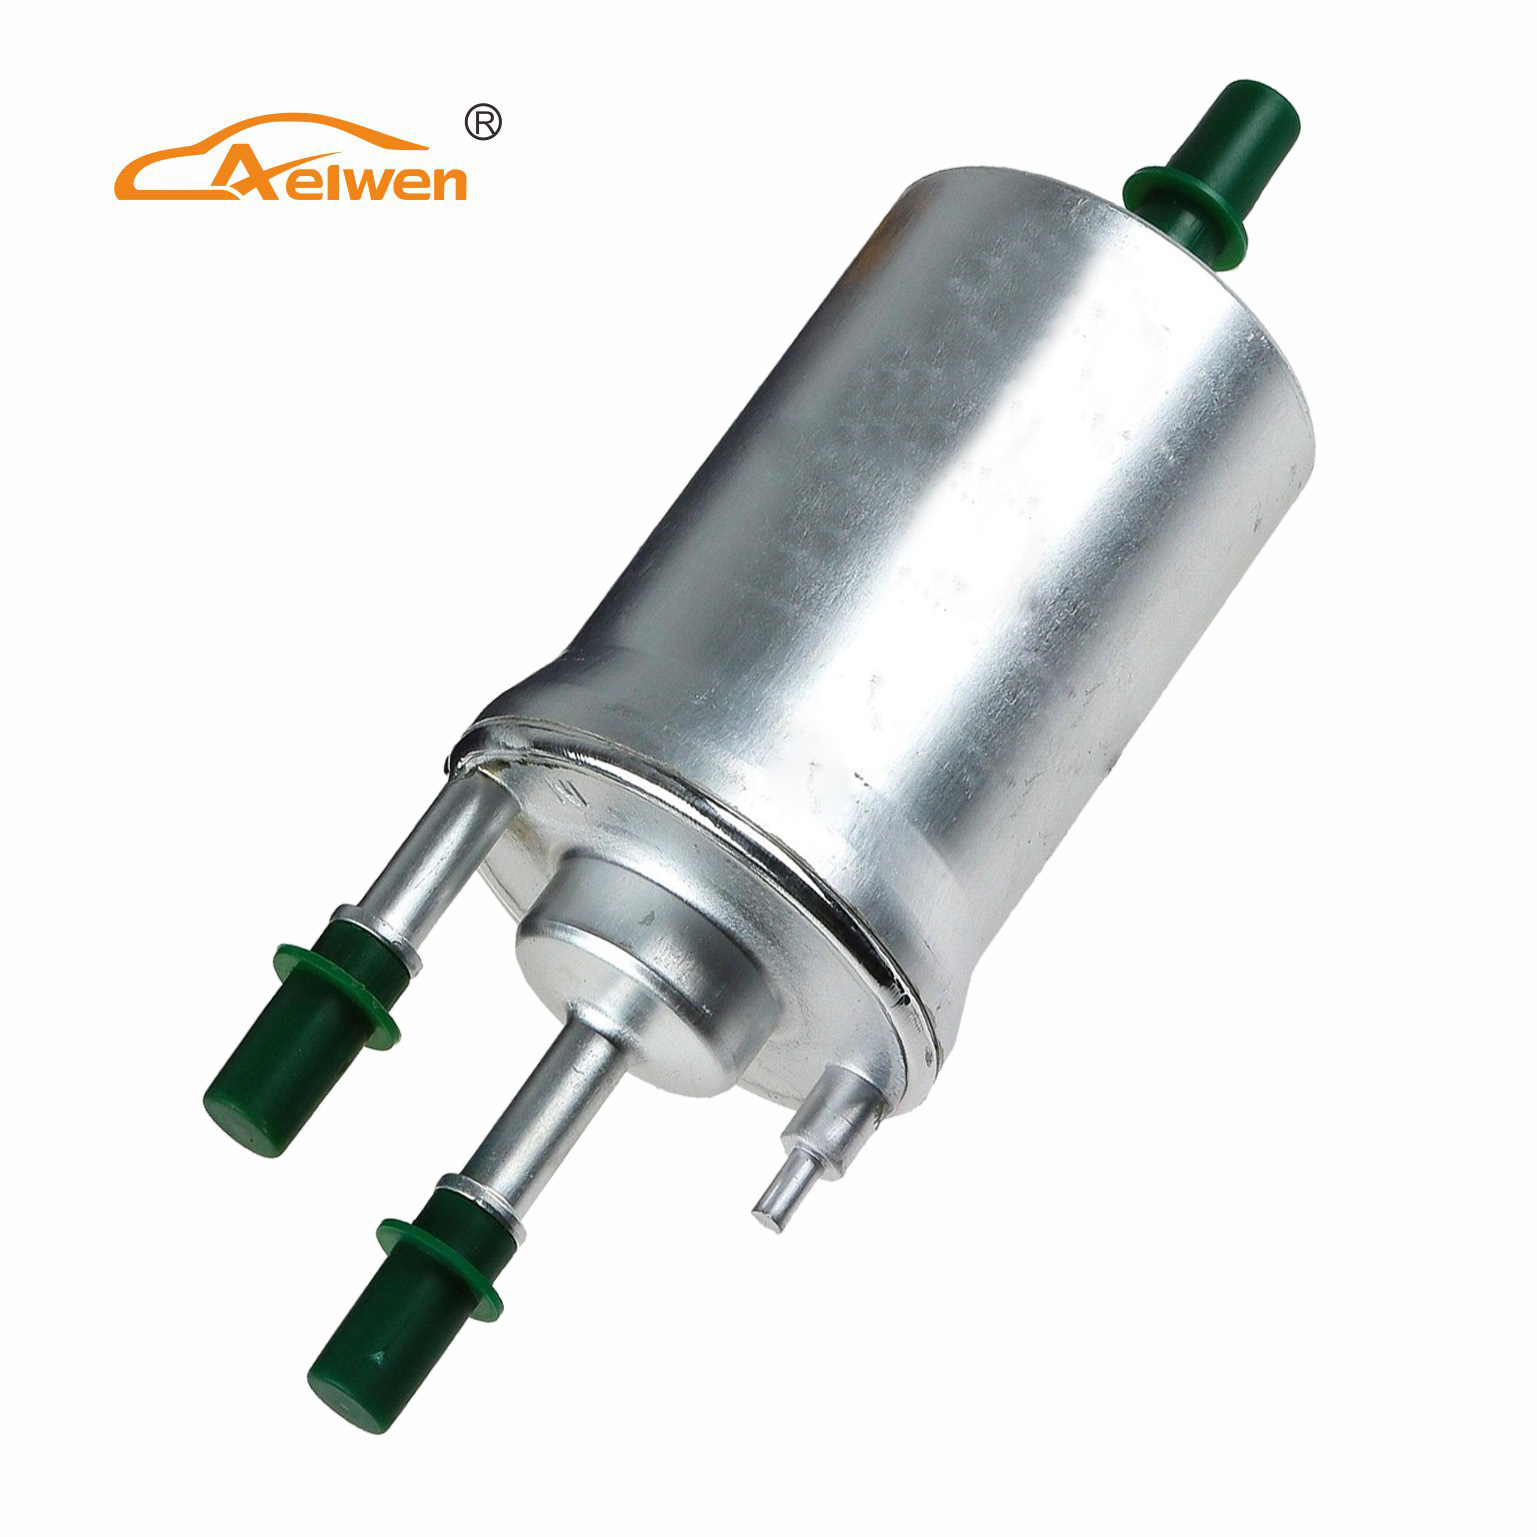 China 6q0-201-051A Aelwen Fuel Filter for VW Jetta 2.5L - China Fuel Filter,  6q0-201-051A